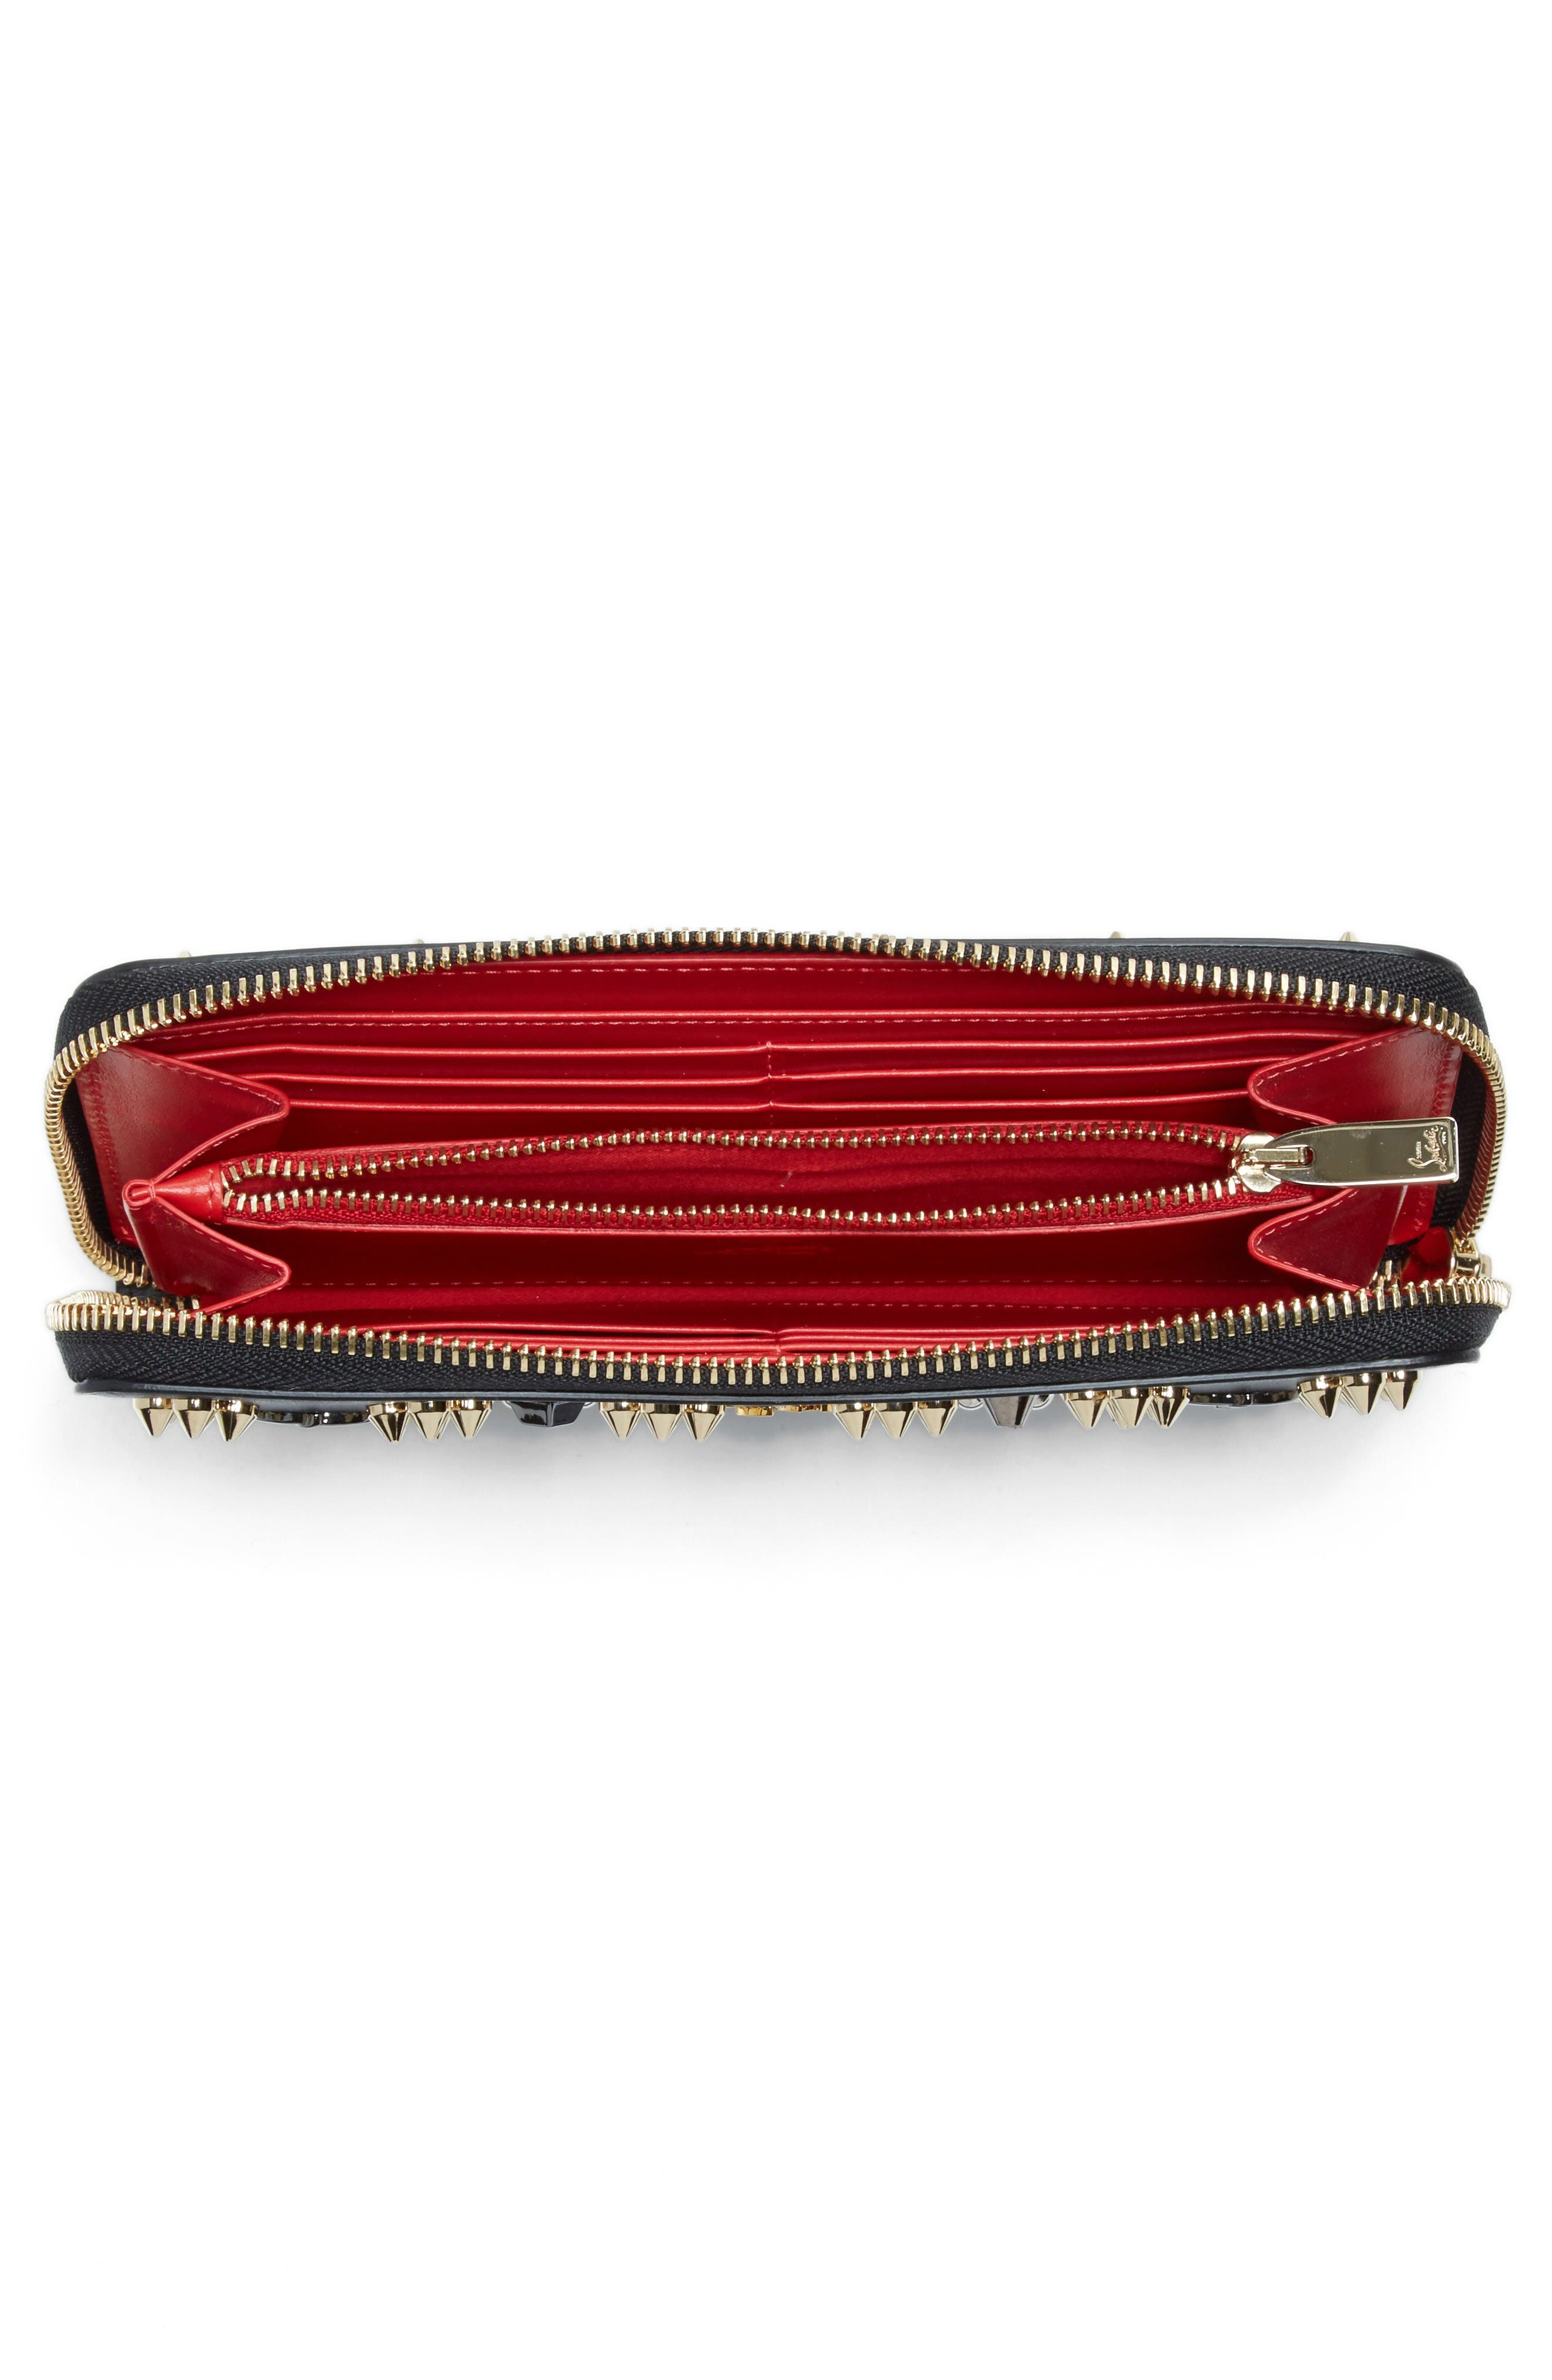 Alternate Image 2  - Christian Louboutin Panettone Spiked Calfskin Wallet